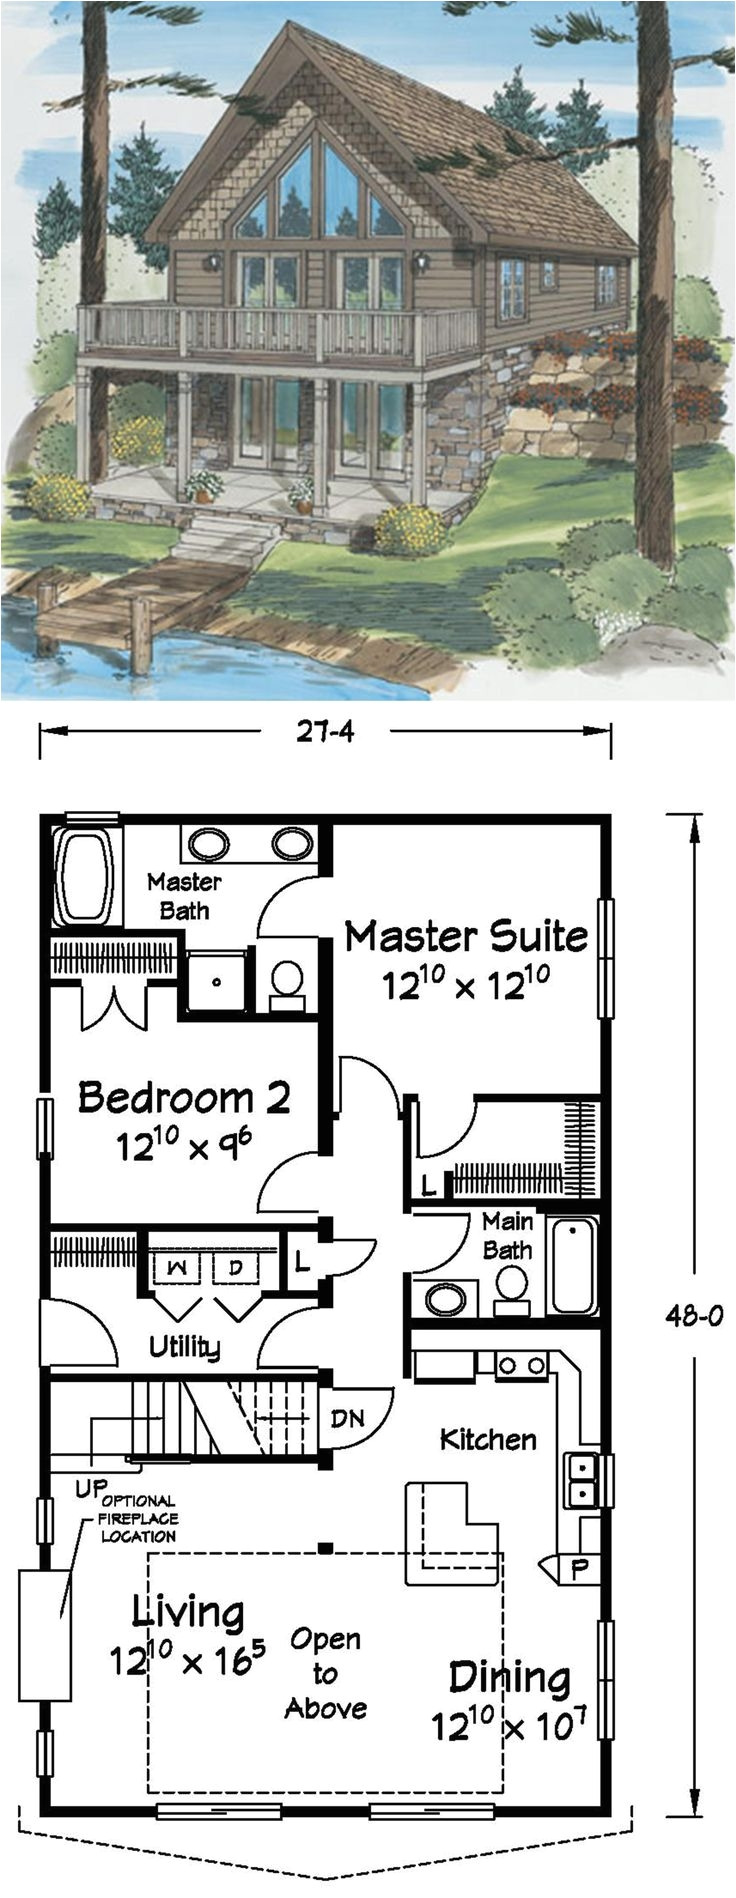 Waterfront Narrow Lot House Plans Lovely Home Plans for Narrow Lots